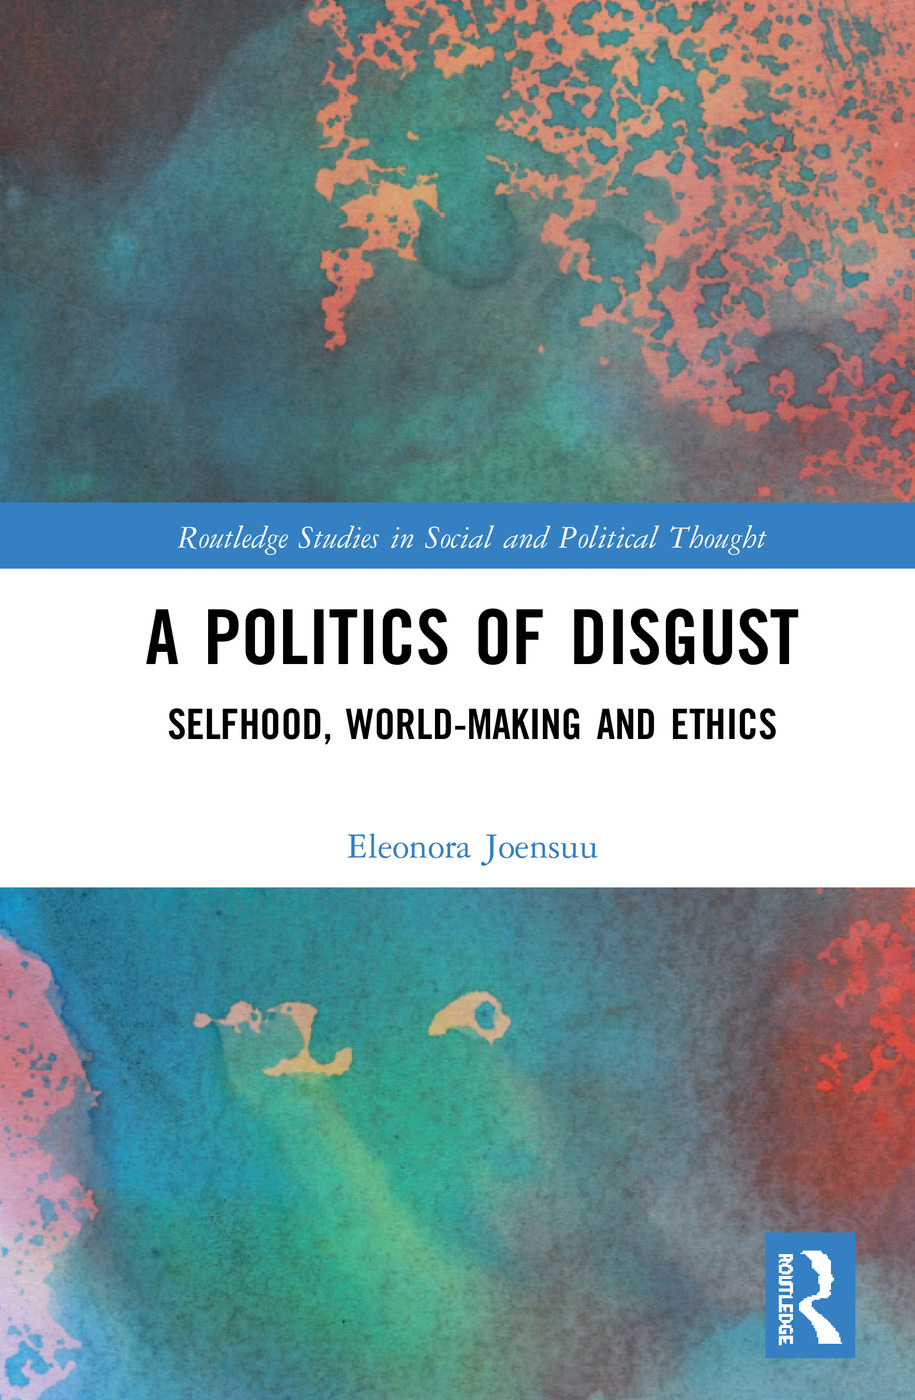 A Politics of Disgust: Selfhood, World-Making and Ethics book cover